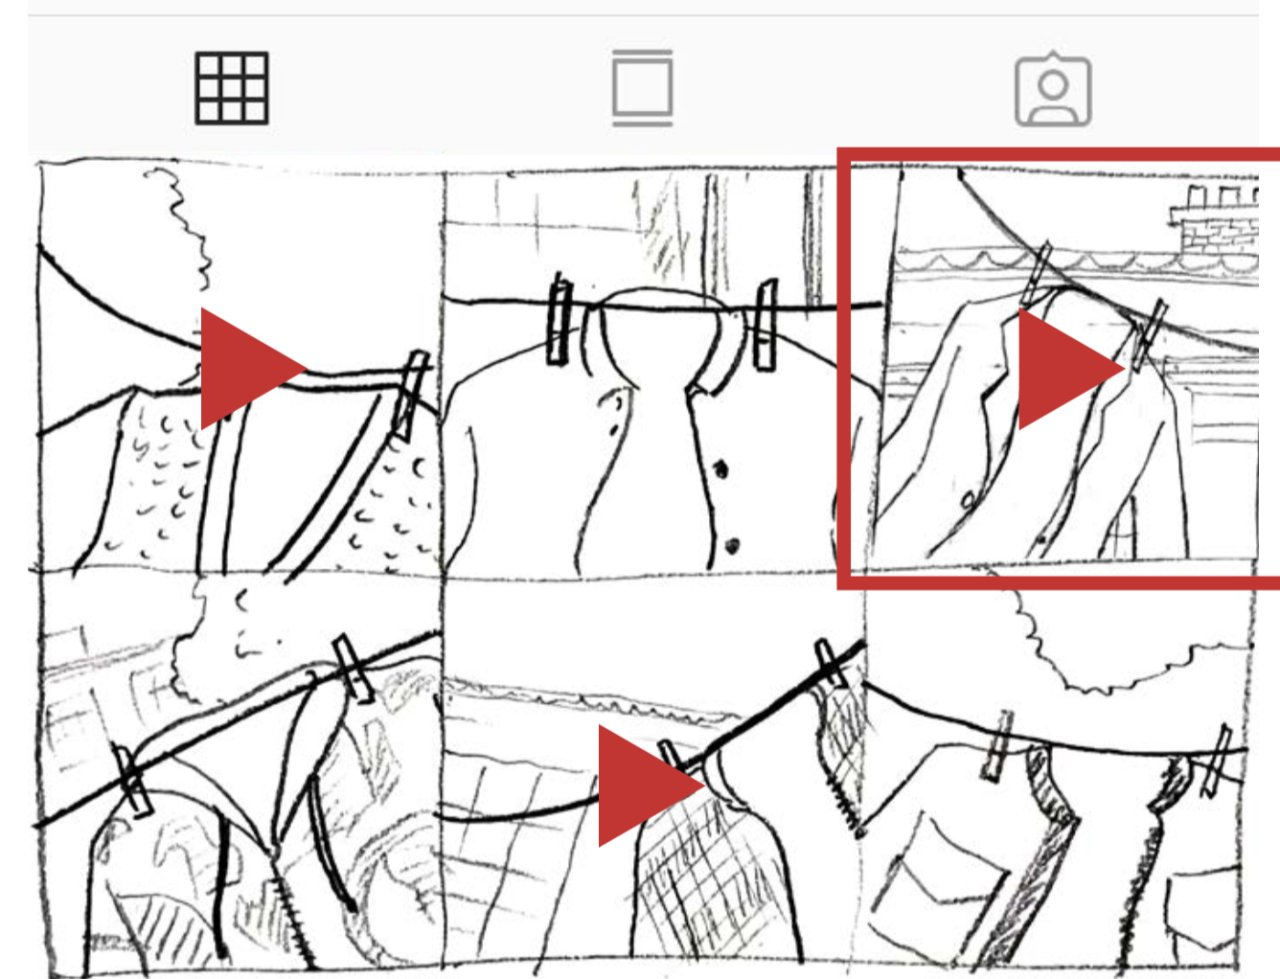 Jeon's idea sketches shared on Instagram (Courtesy of Sang Jeon)